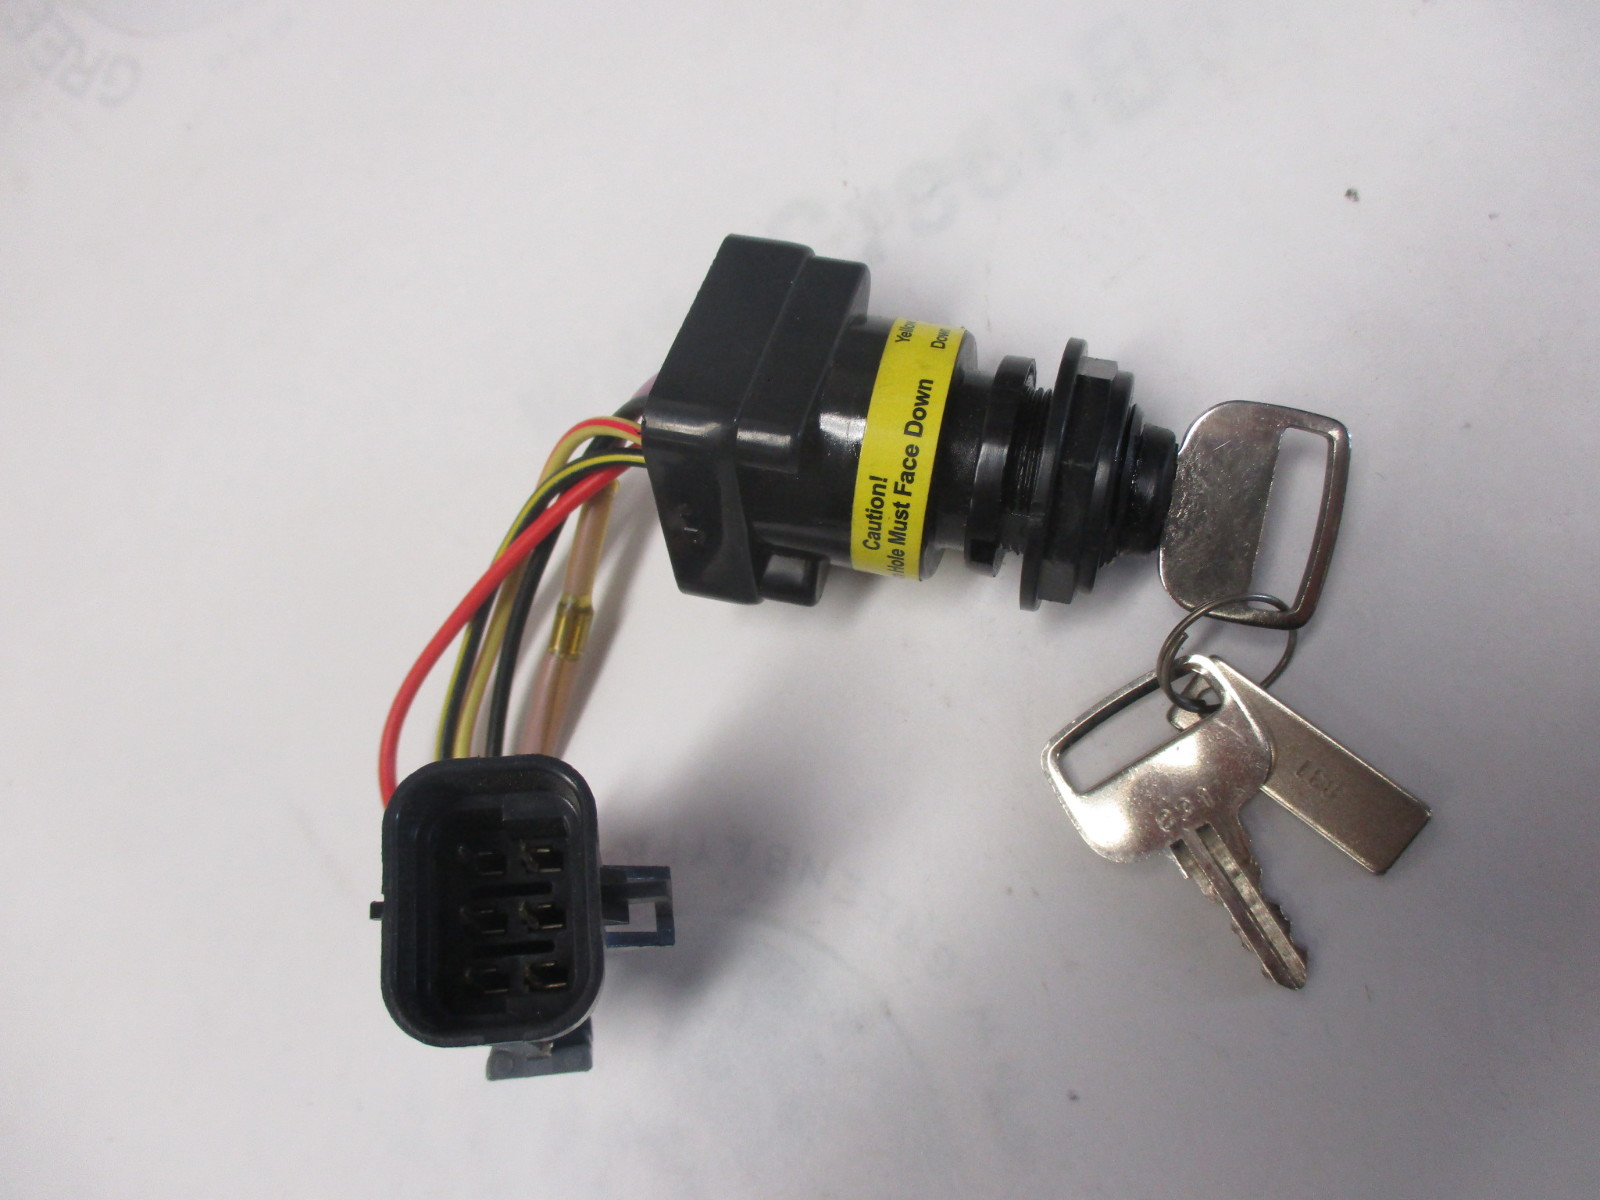 87-897716K01 Quicksilver Outboard Boat Ignition Switch and Key 2006 and Newer